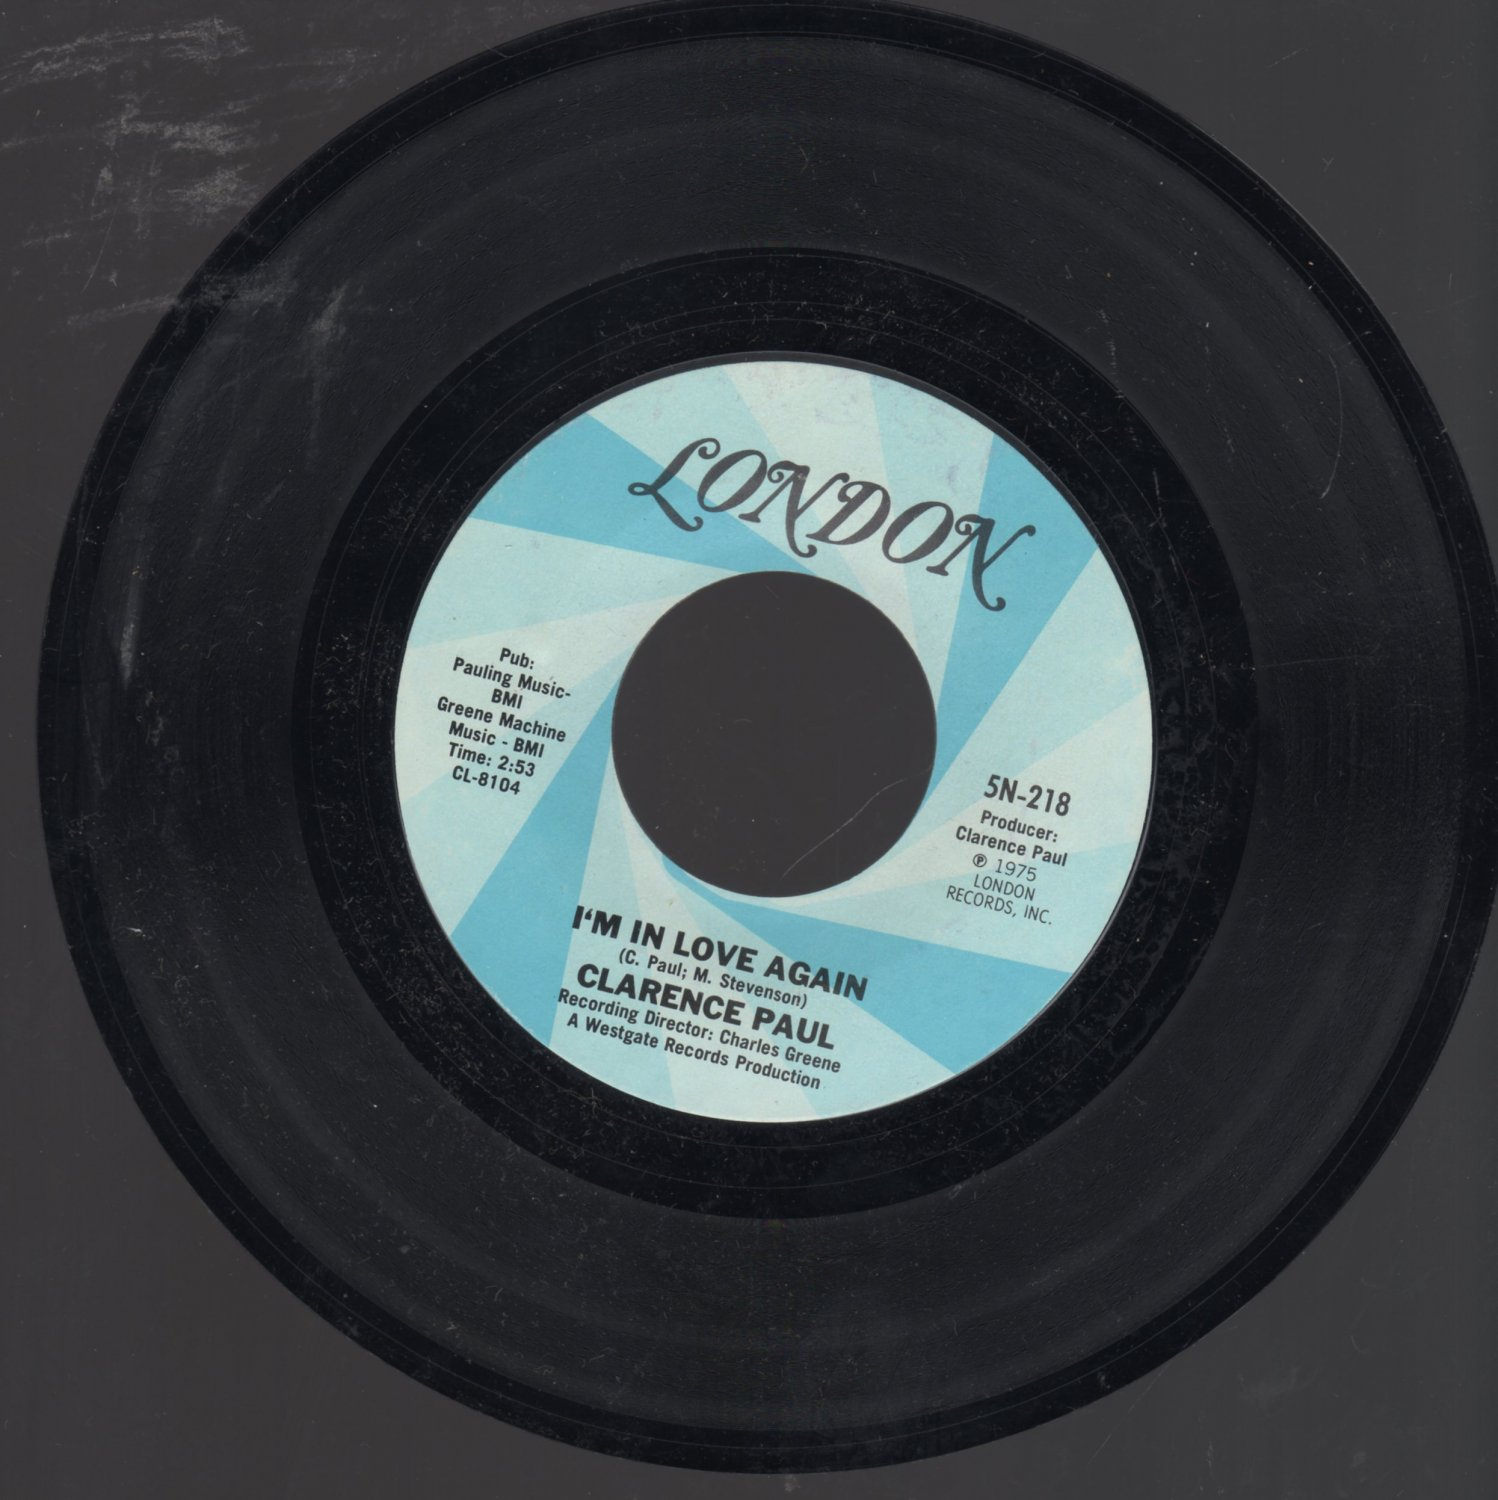 CLARENCE PAUL & MEMBERS: I'm In Love Again 45 Record